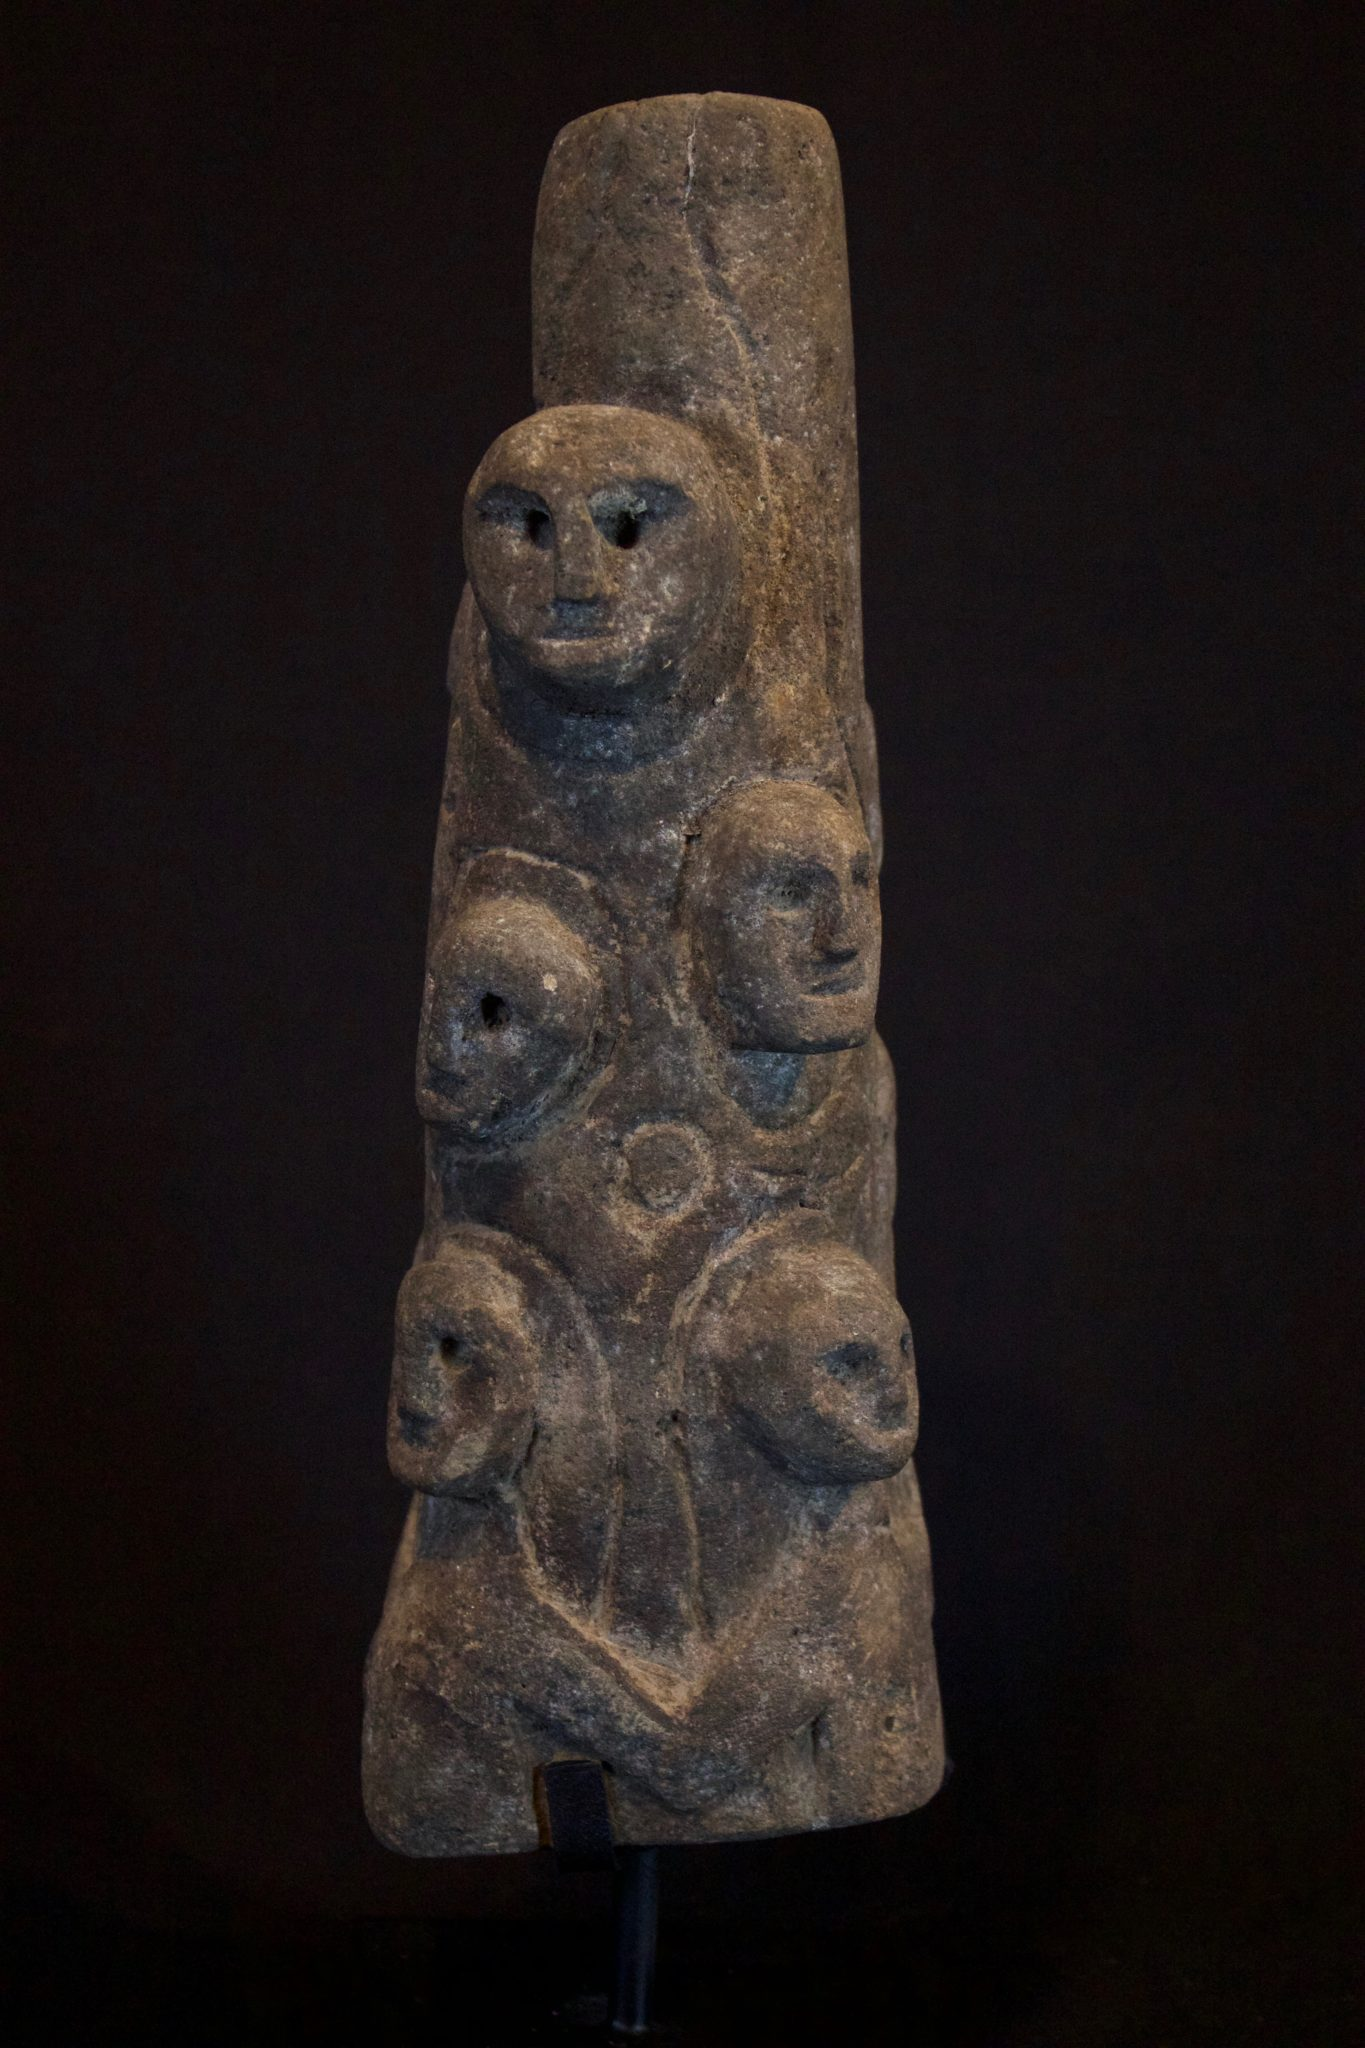 """Ancestral Offering Statue, Indonesia, Timor Island, Boti village, Mid 20th century Wood. This totem-like carving of many ancestor effigies is used by shamans in contacting spirits and healing rituals. 11 ½"""" x 4"""" x 3 ½"""", sold"""